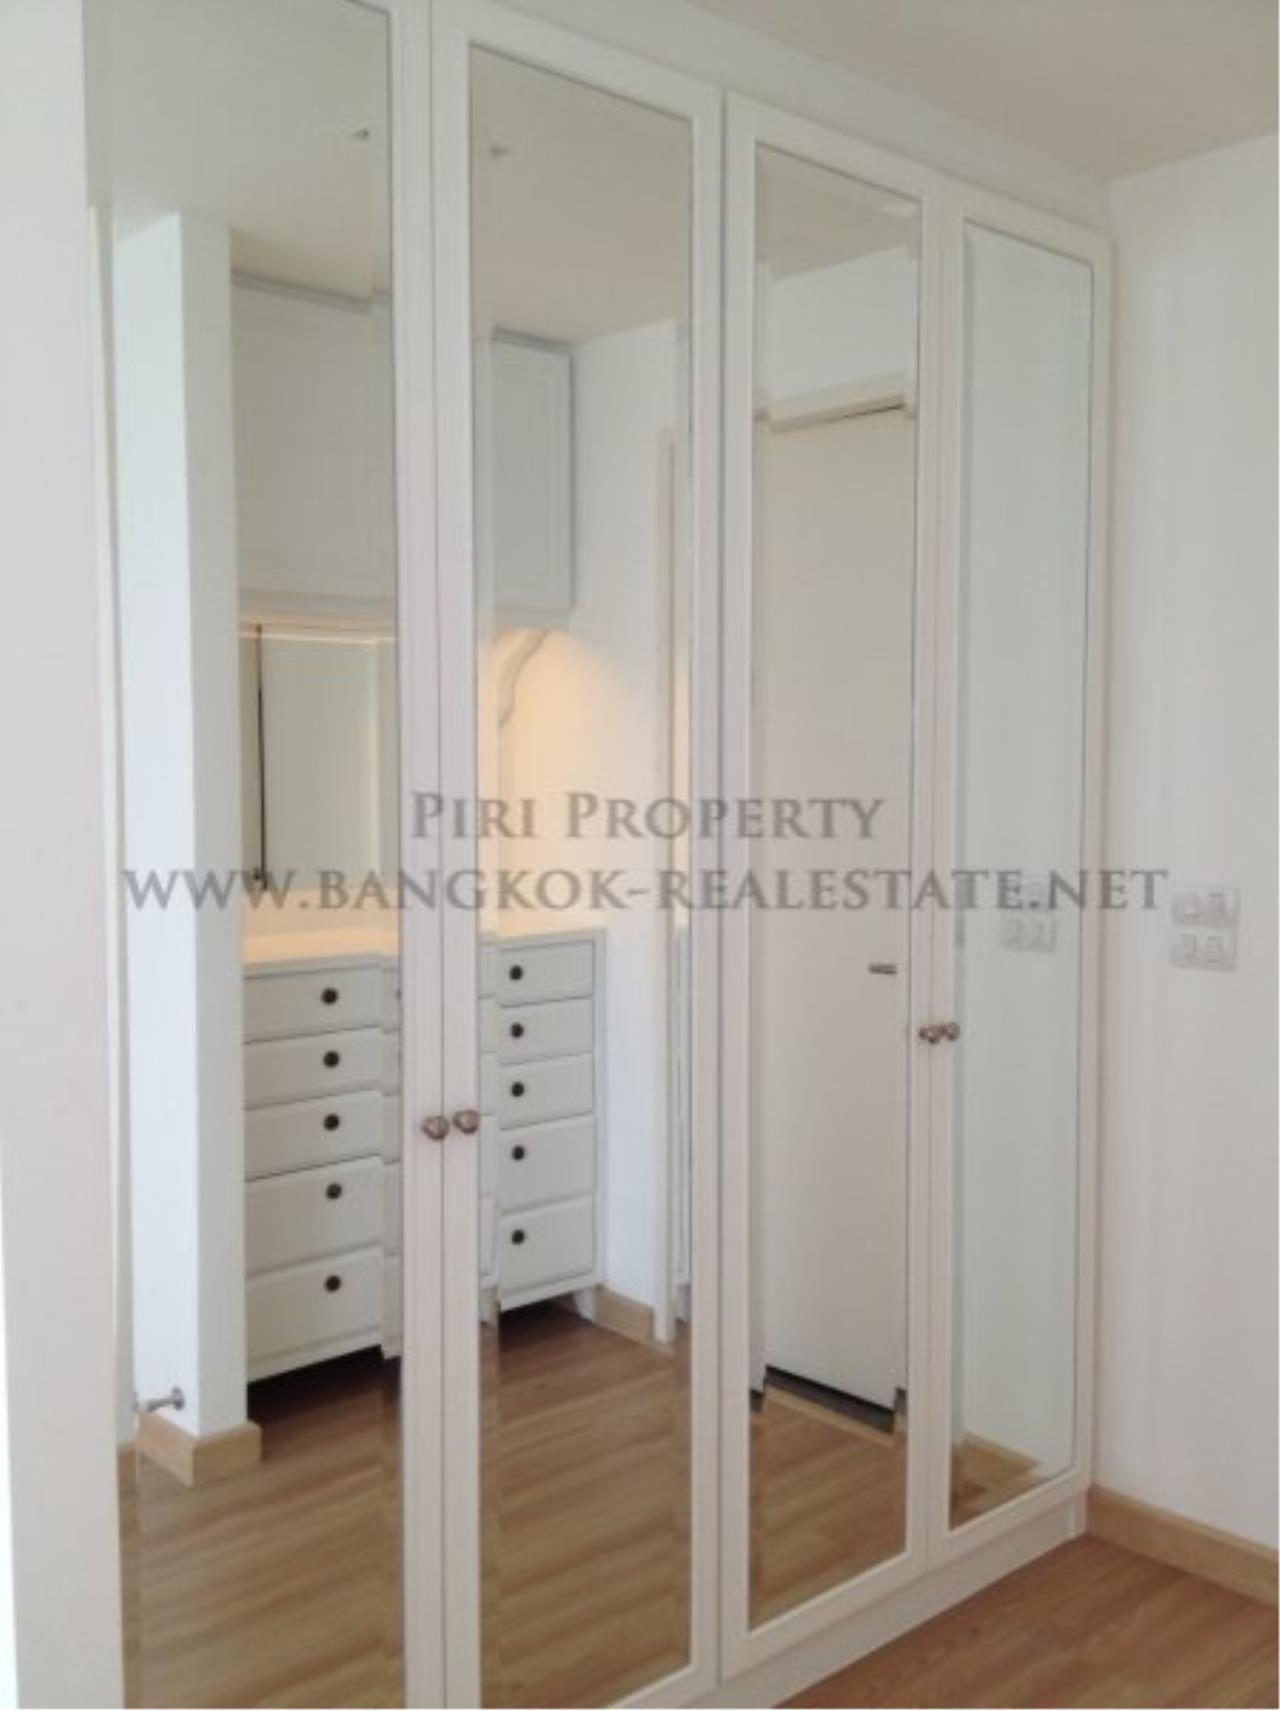 Piri Property Agency's Nice 2 Bedroom Condo in Asoke - 70 SQM - Fully furnished 3